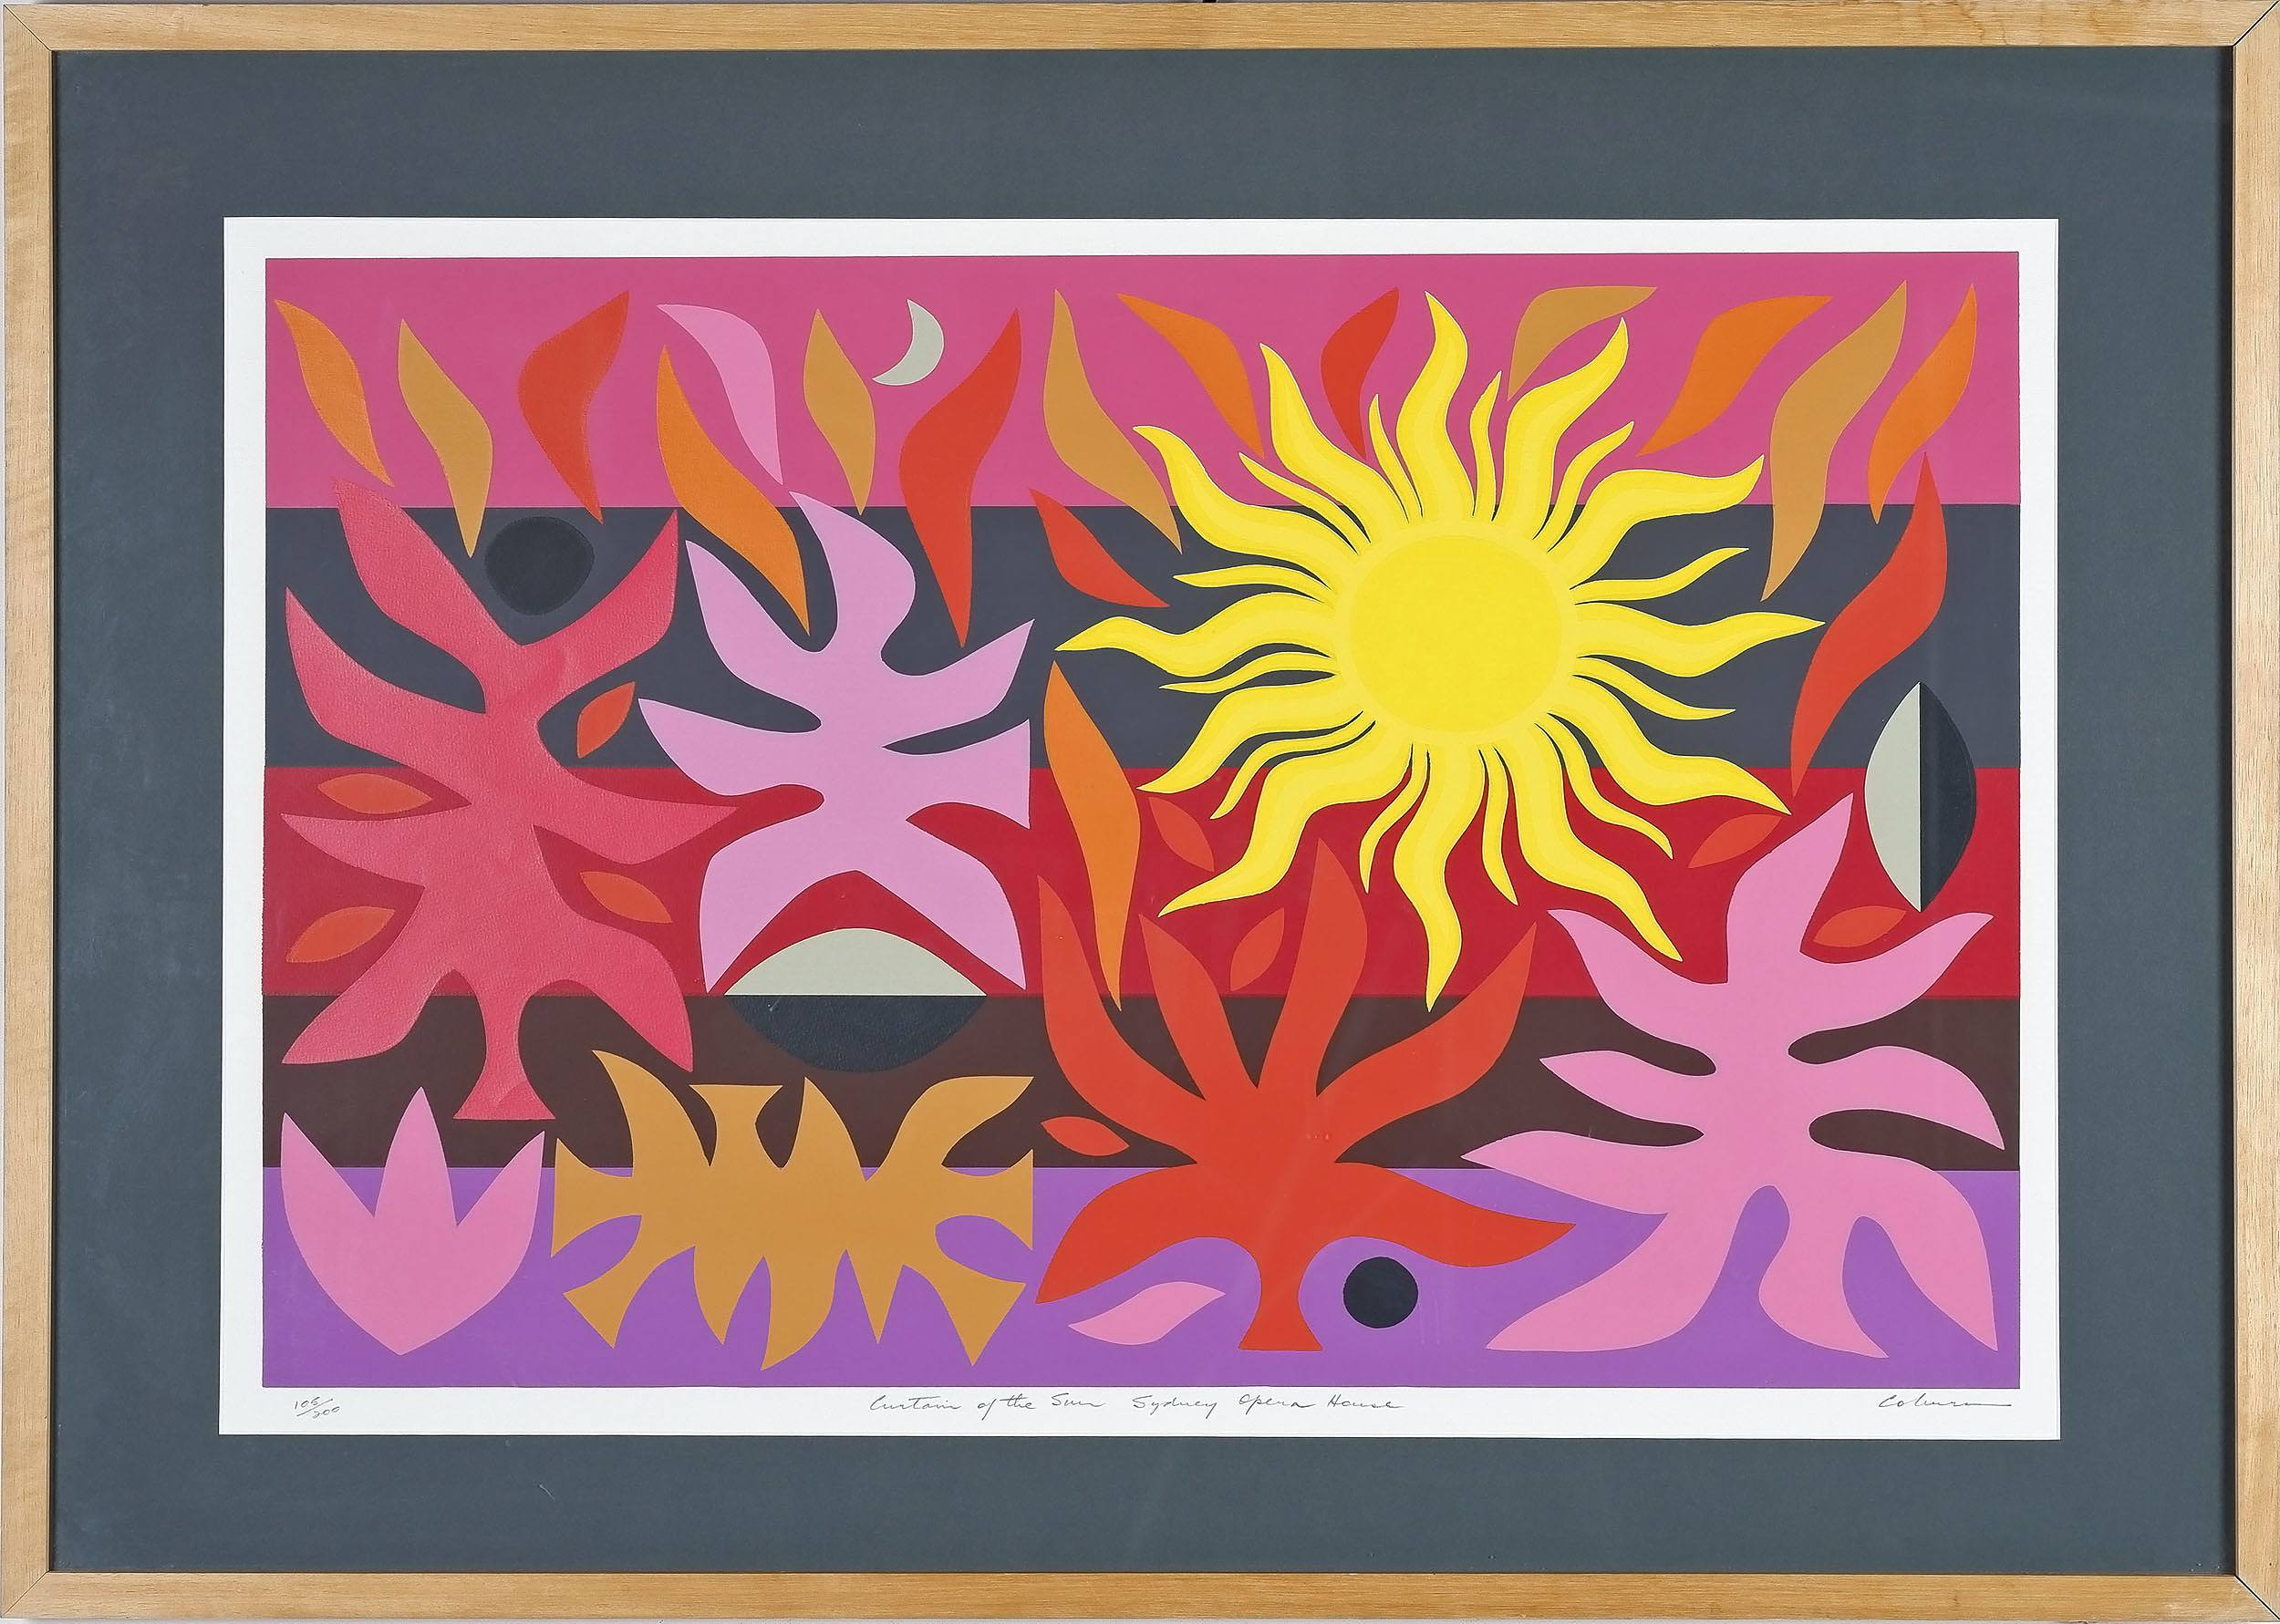 'John Coburn (1925-2008) Curtain of The Sun Sydney Opera House Screen Print Edition 106/200'